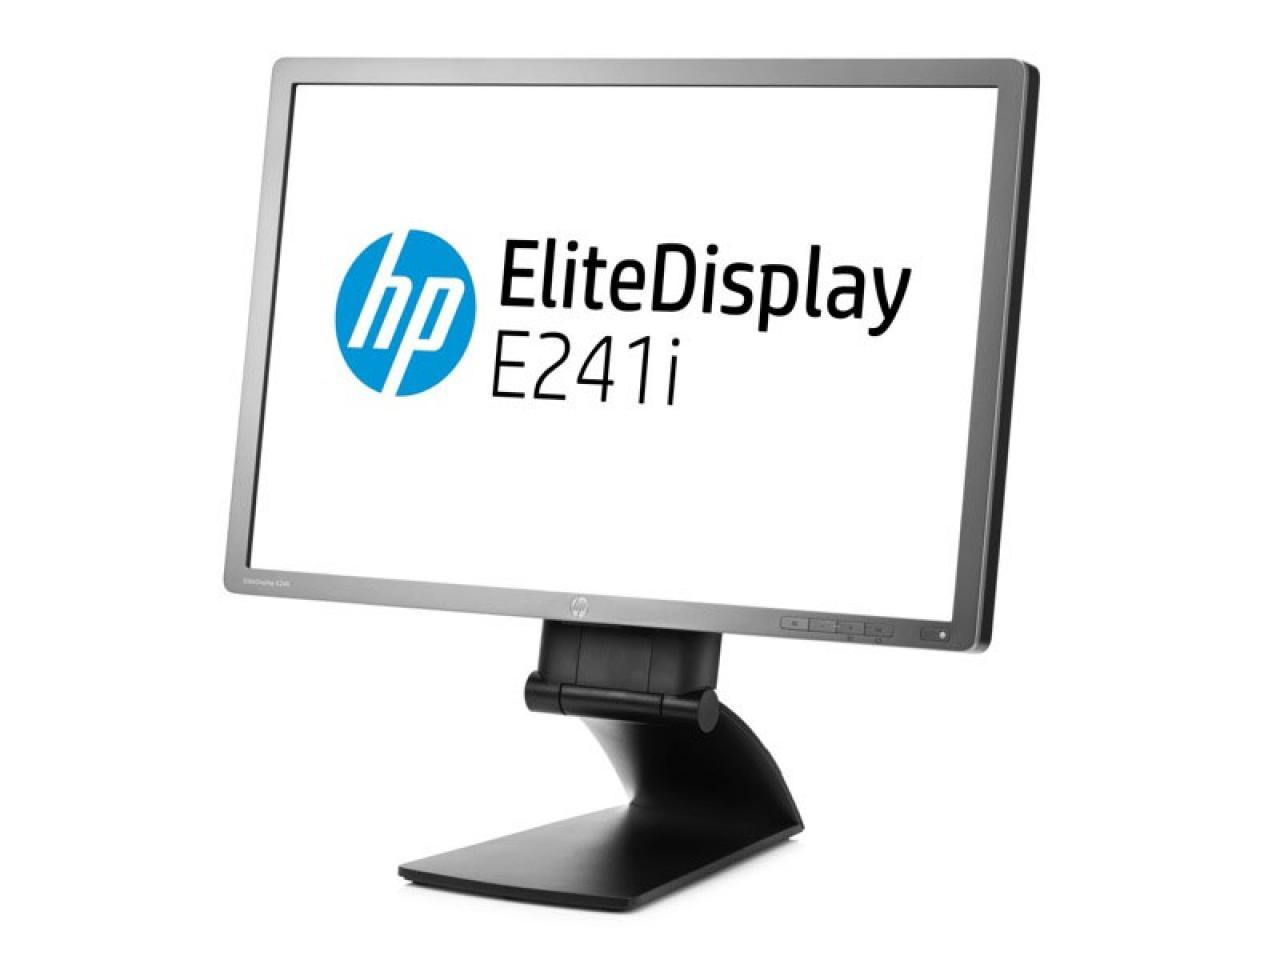 Hewlett Packard EliteDisplay E241i   - shop.bb-net.de